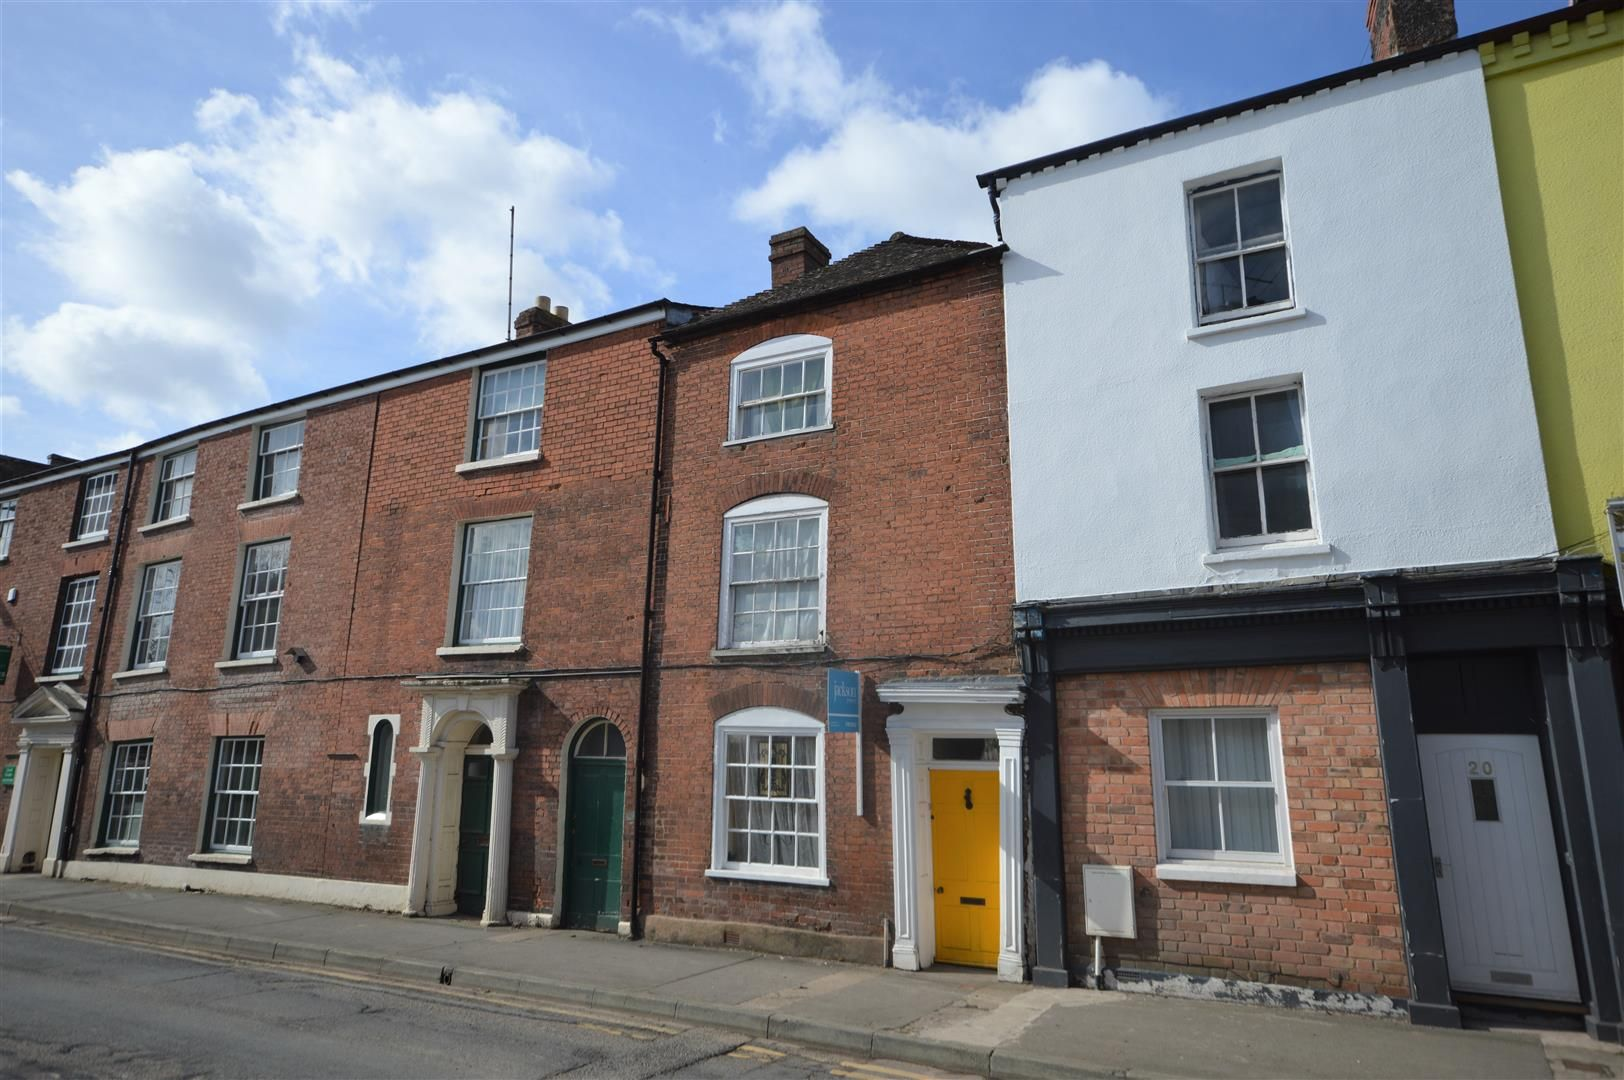 3 bed terraced for sale in Leominster - Property Image 1